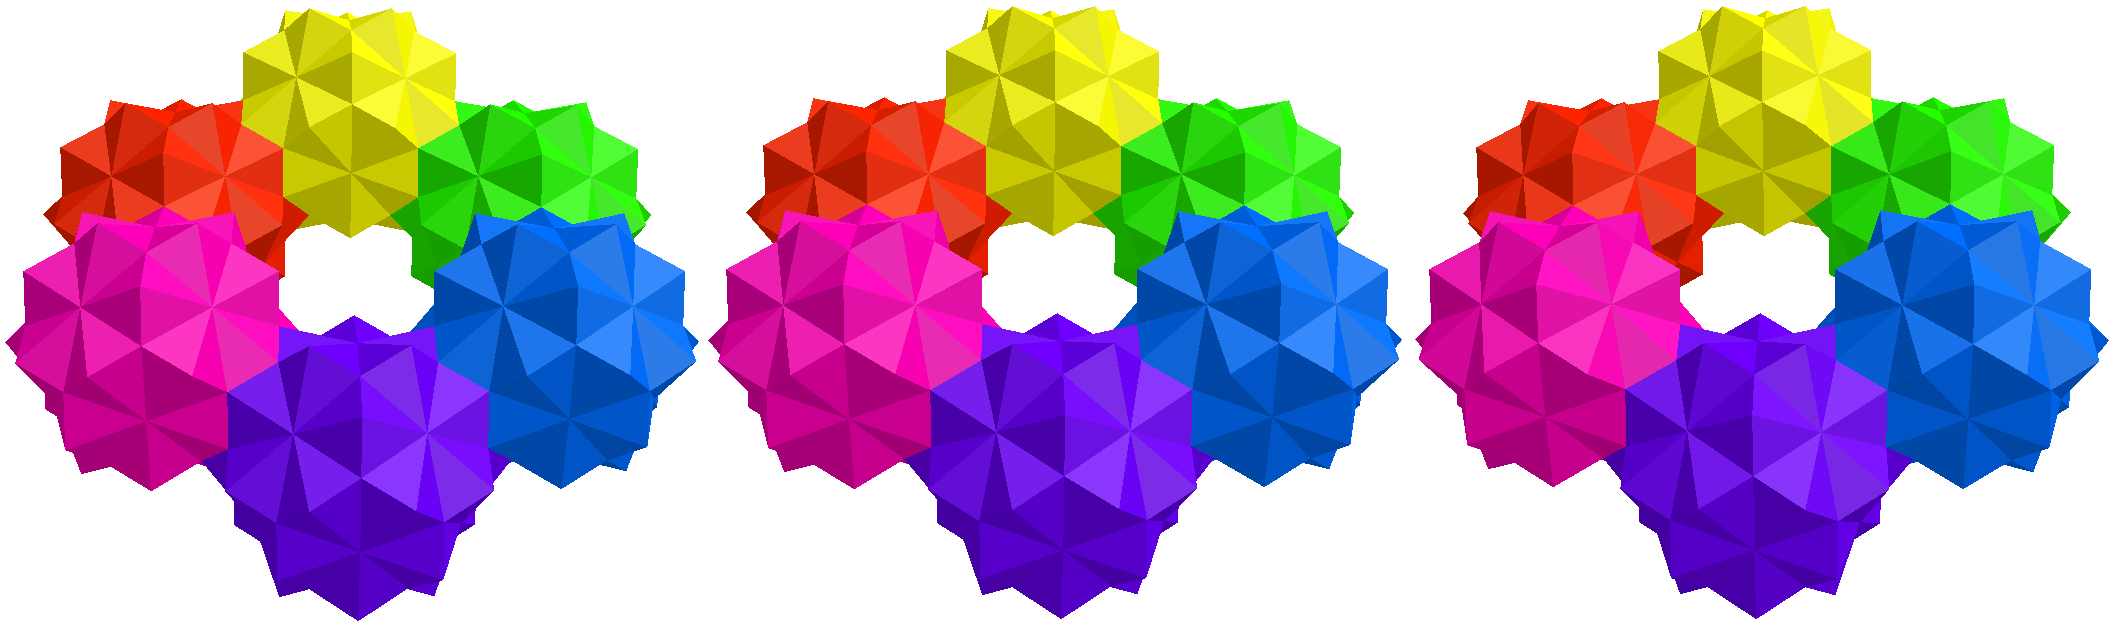 600_decagonicdodecahedron_sld_01D302.png